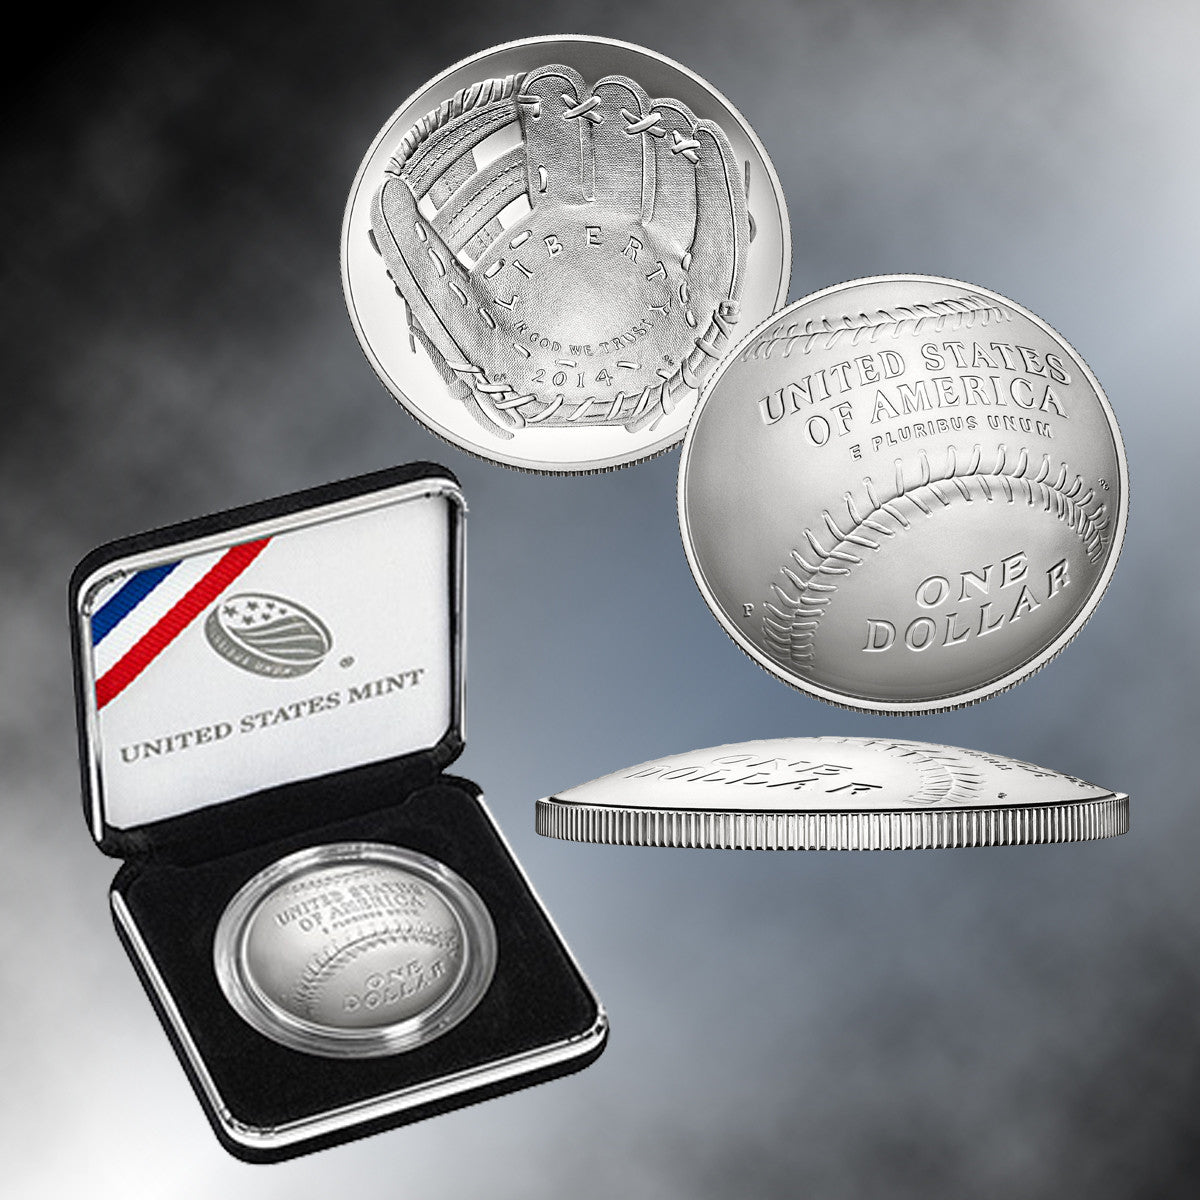 2014 Baseball Hall of Fame Brilliant Uncirculated Silver Dollar